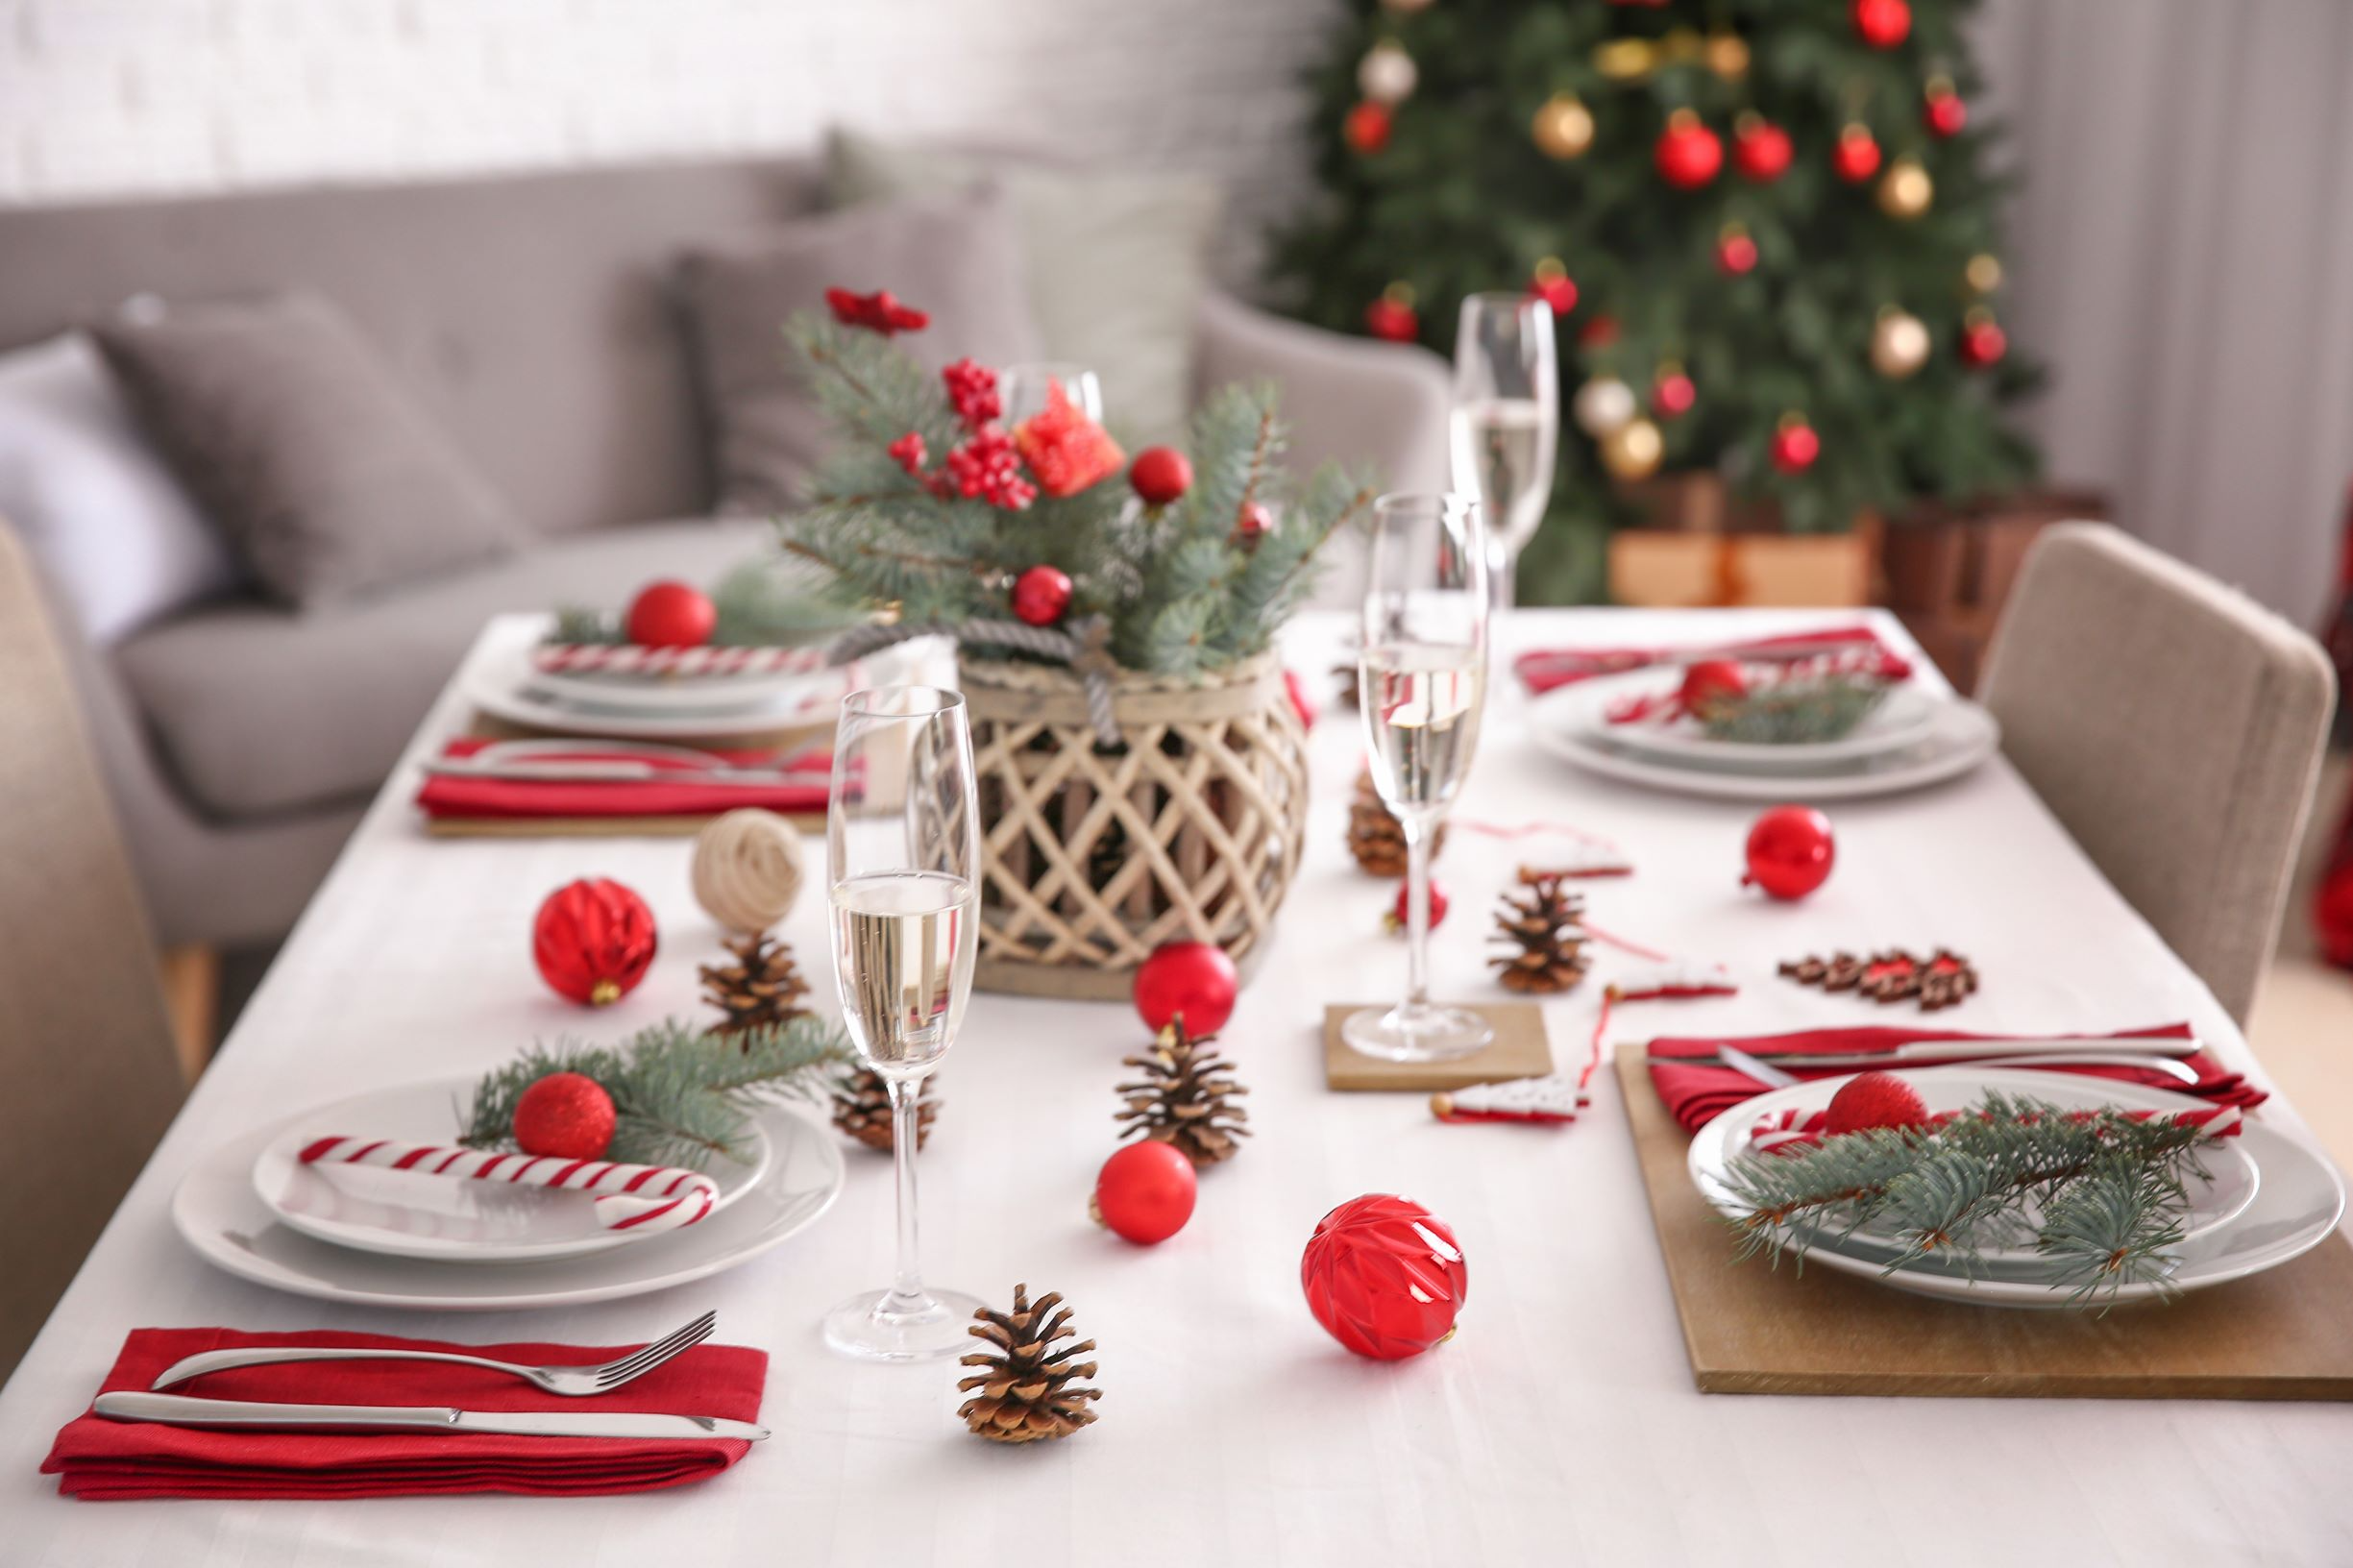 Classic Christmas table setup in red and green theme.